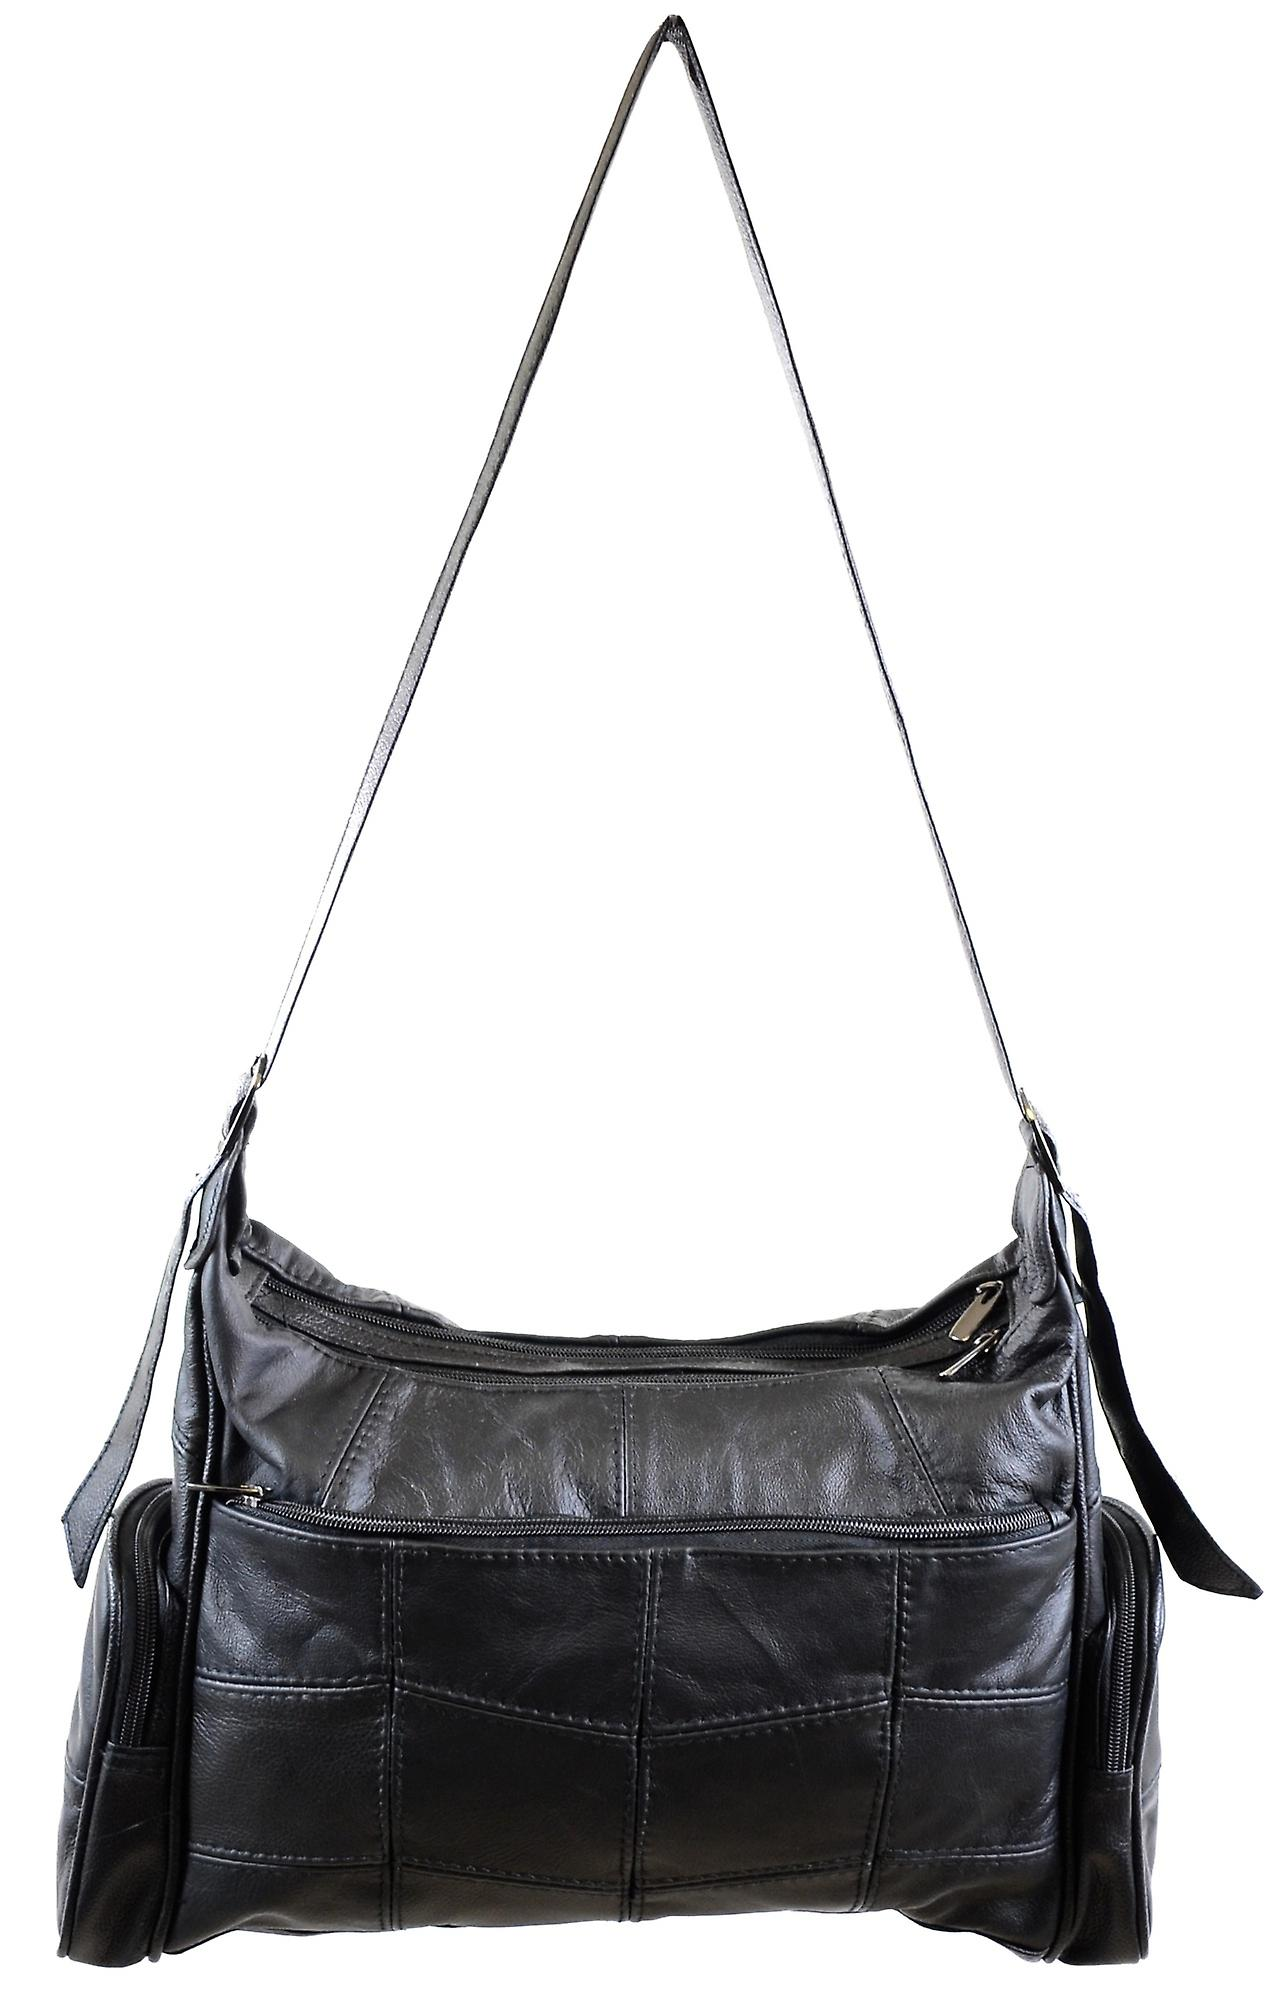 Ladies Large Leather Shoulder Bag   Hand Bag with 2 Main Compartments and Multiple  Pockets - e65bfc5f5f420